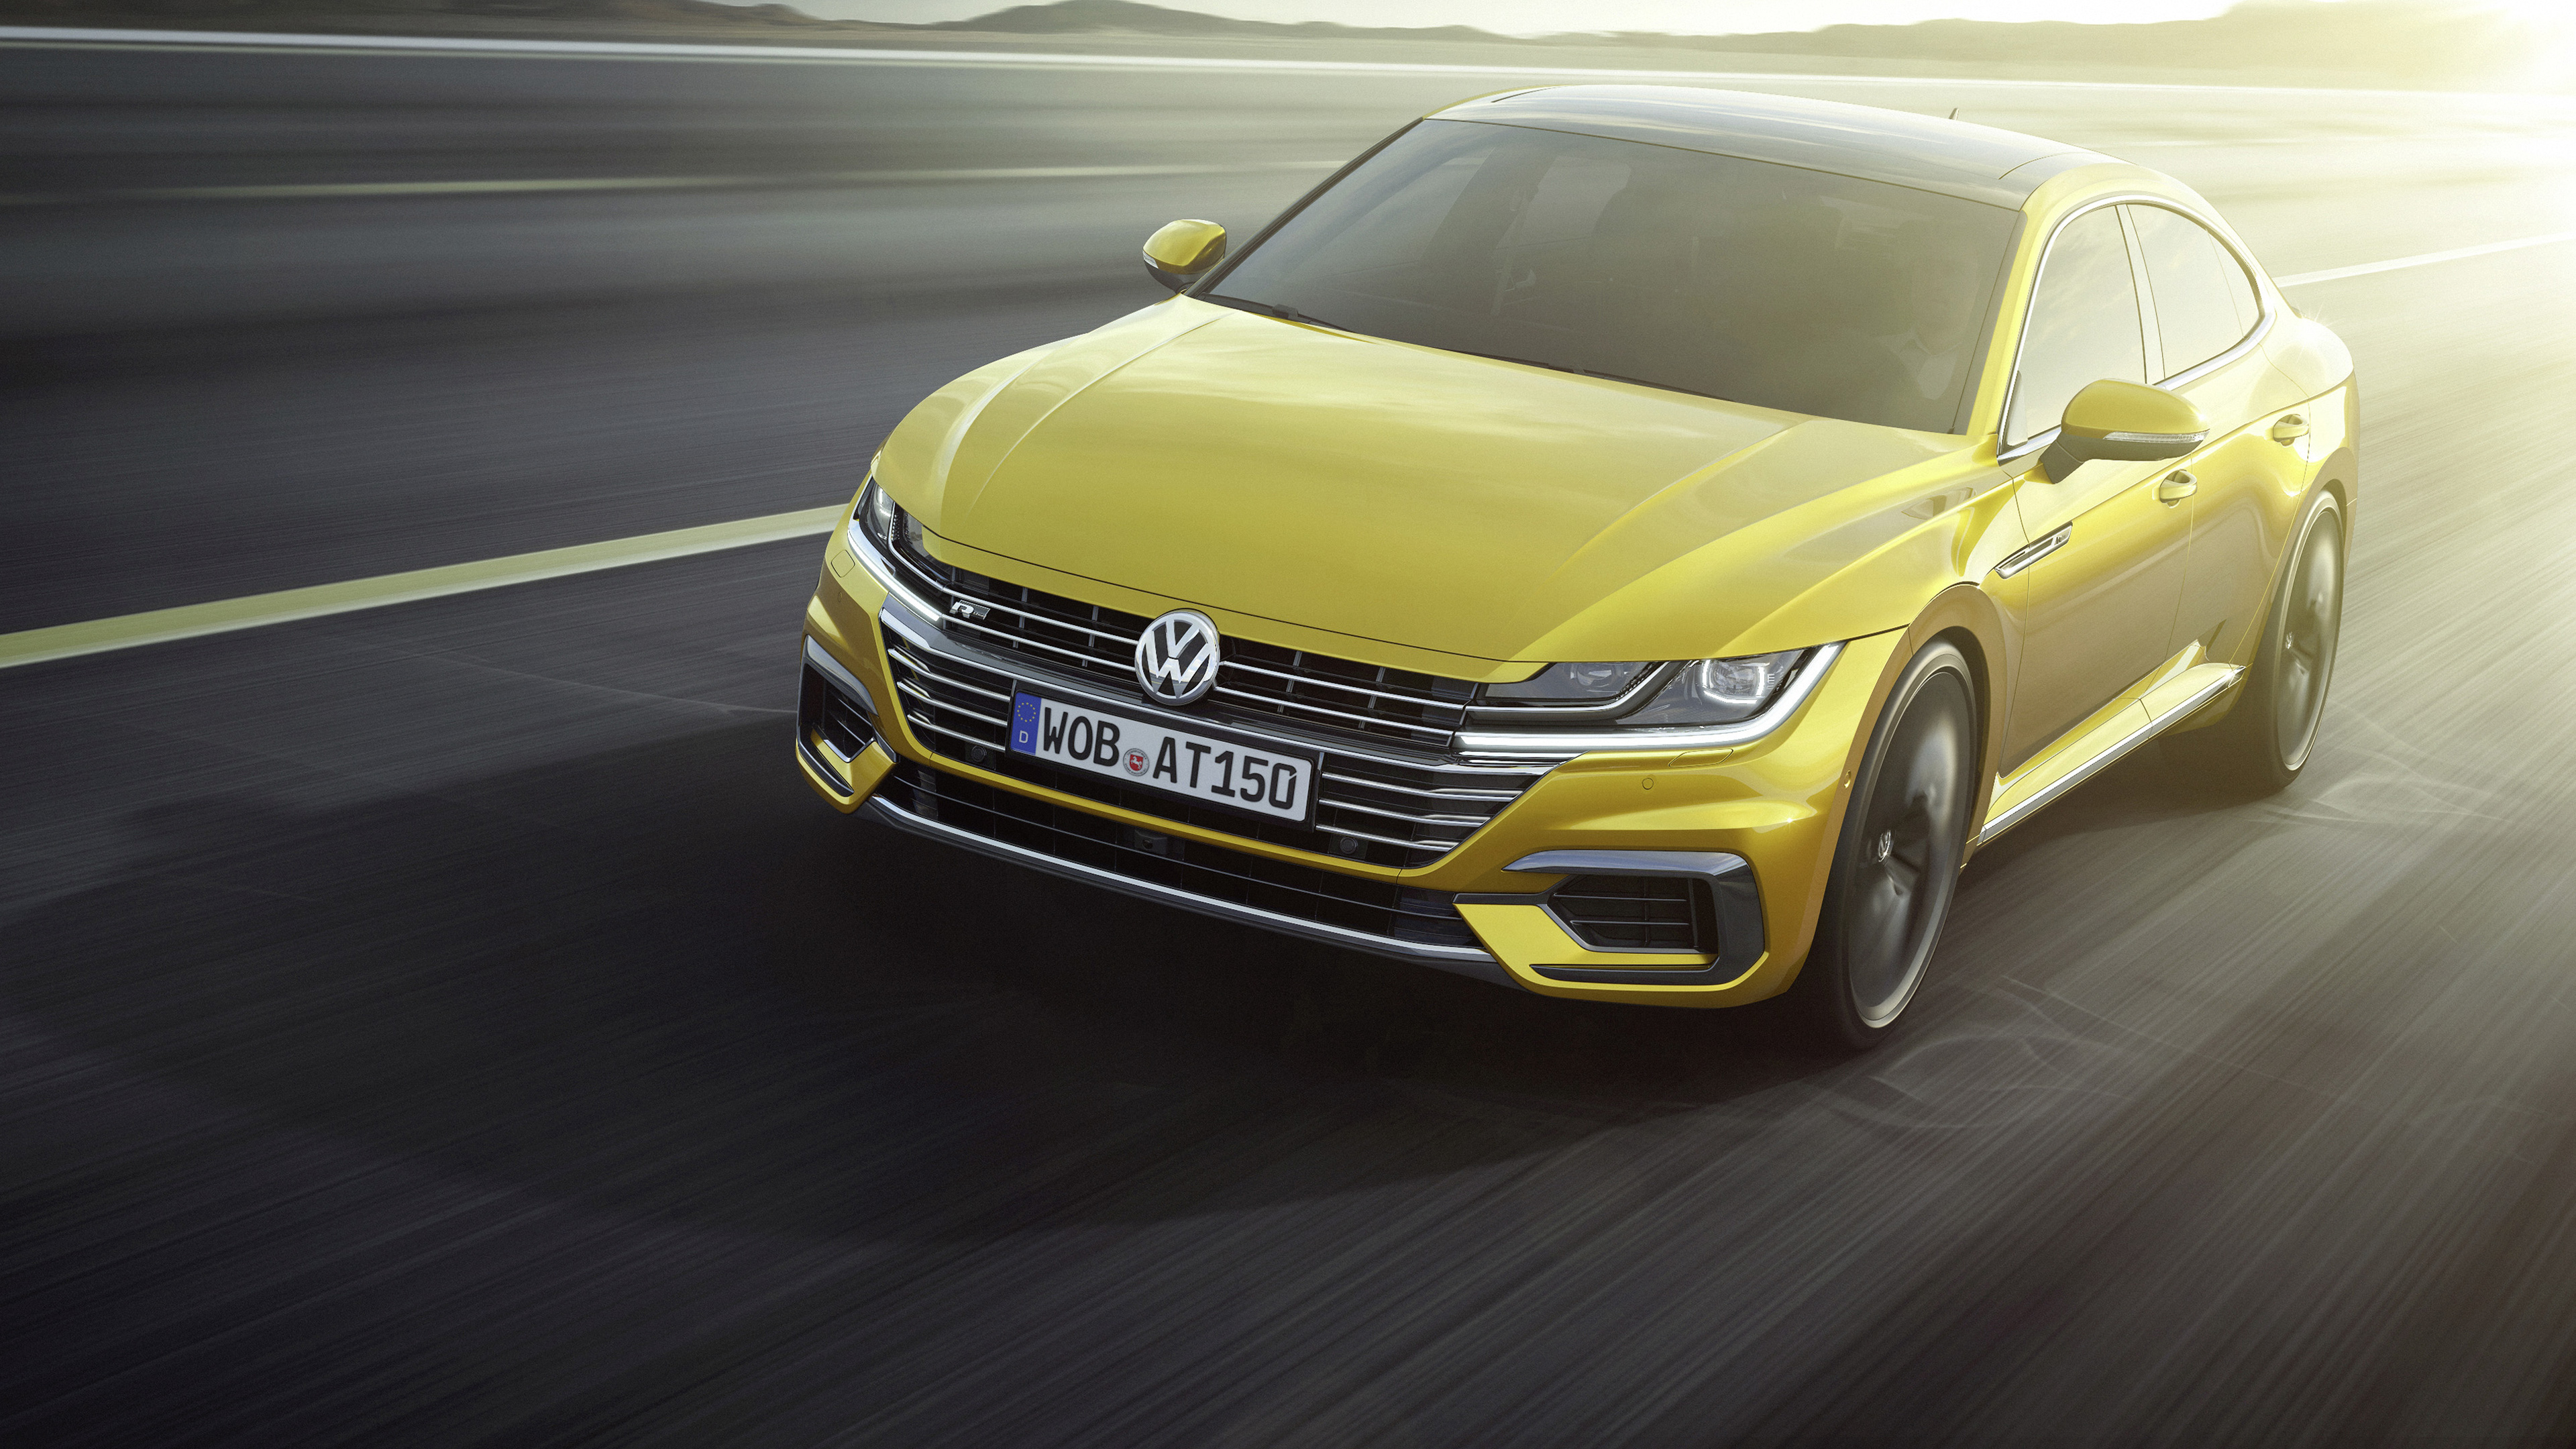 3840x2160 - Volkswagen Arteon Wallpapers 22